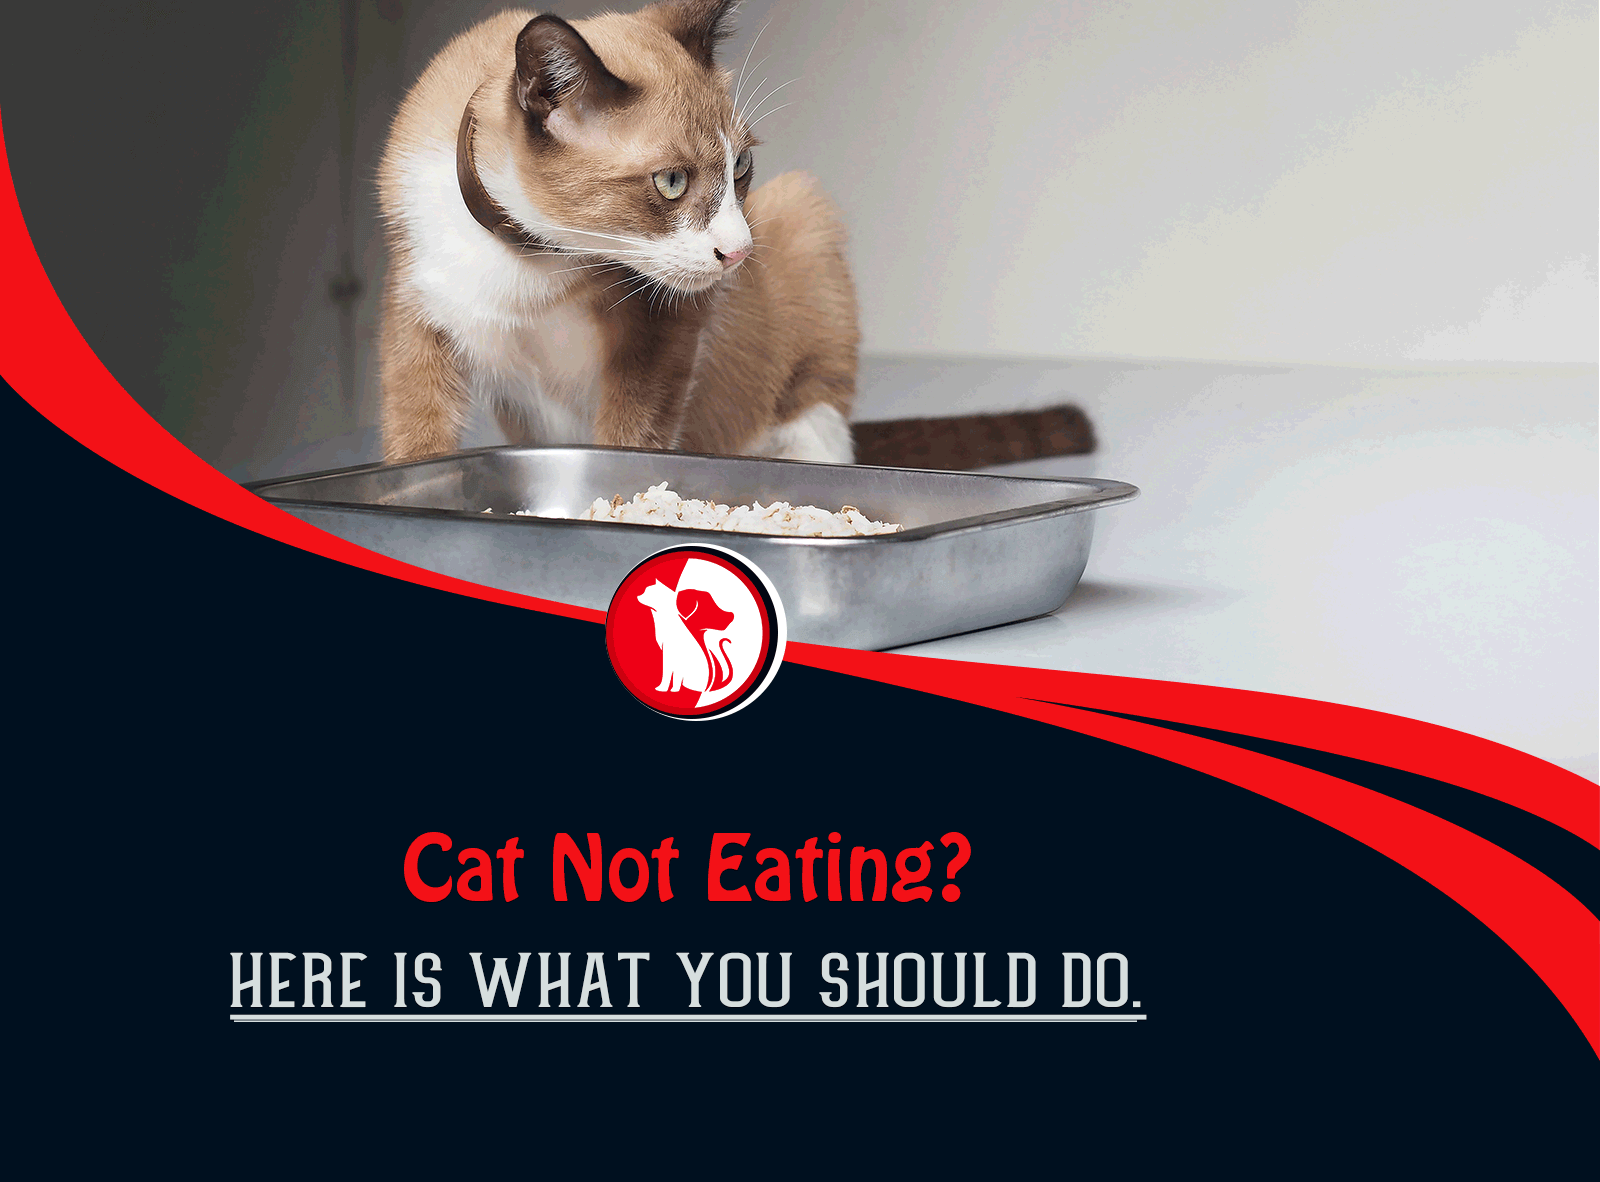 Cat Not Eating? Here Is What You Should Do